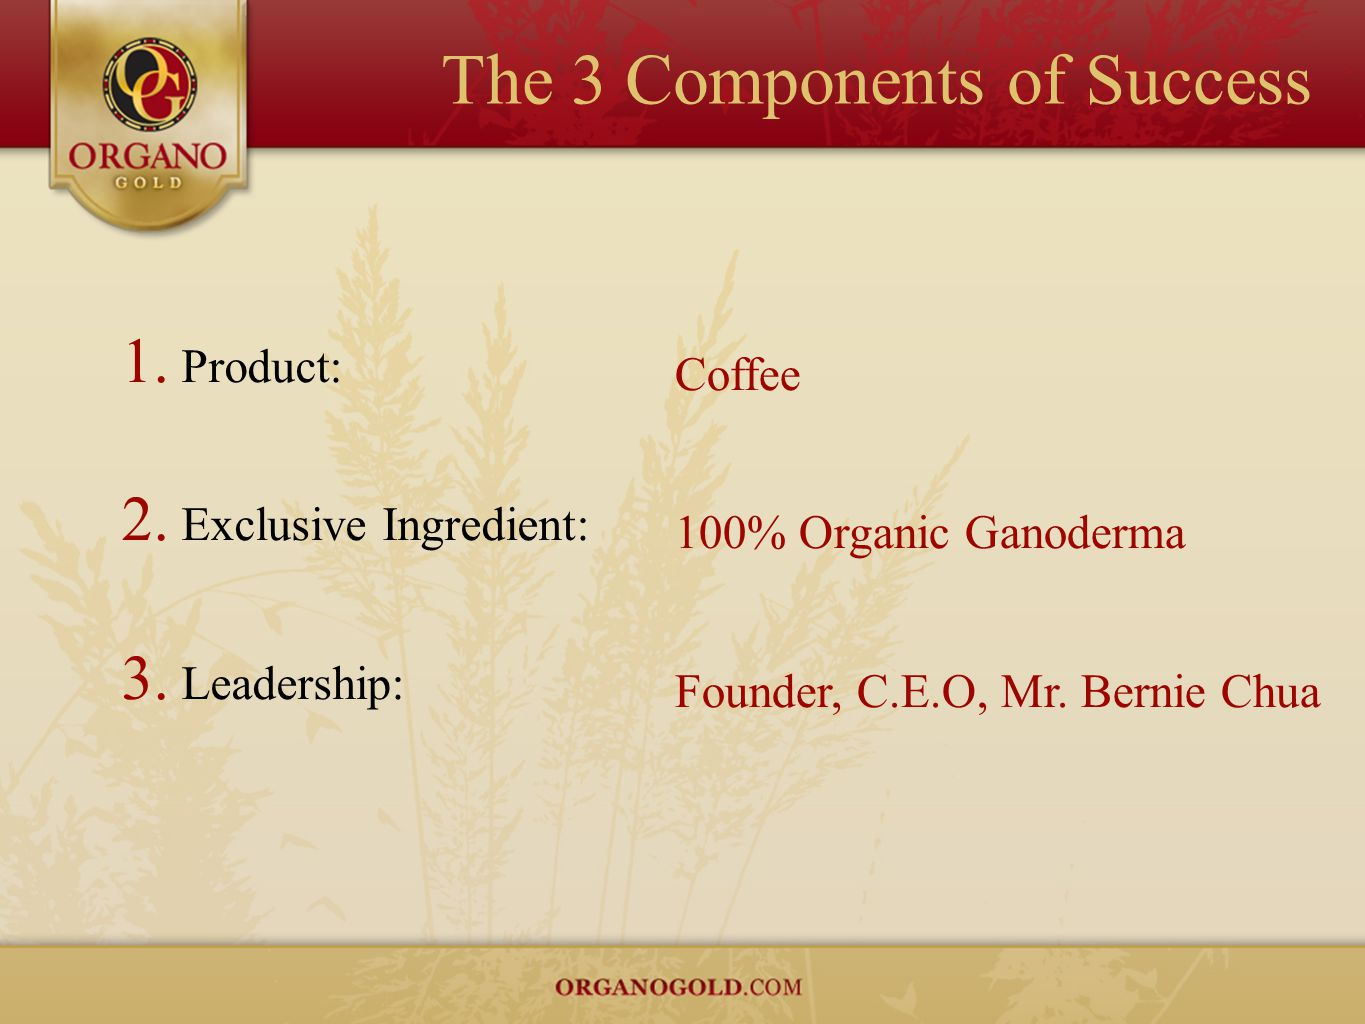 The 3 Components of Success 1. Product: 2. Exclusive Ingredient: 3. Leadership: Coffee 100% Organic Ganoderma Founder, C.E.O, Mr. Bernie Chua